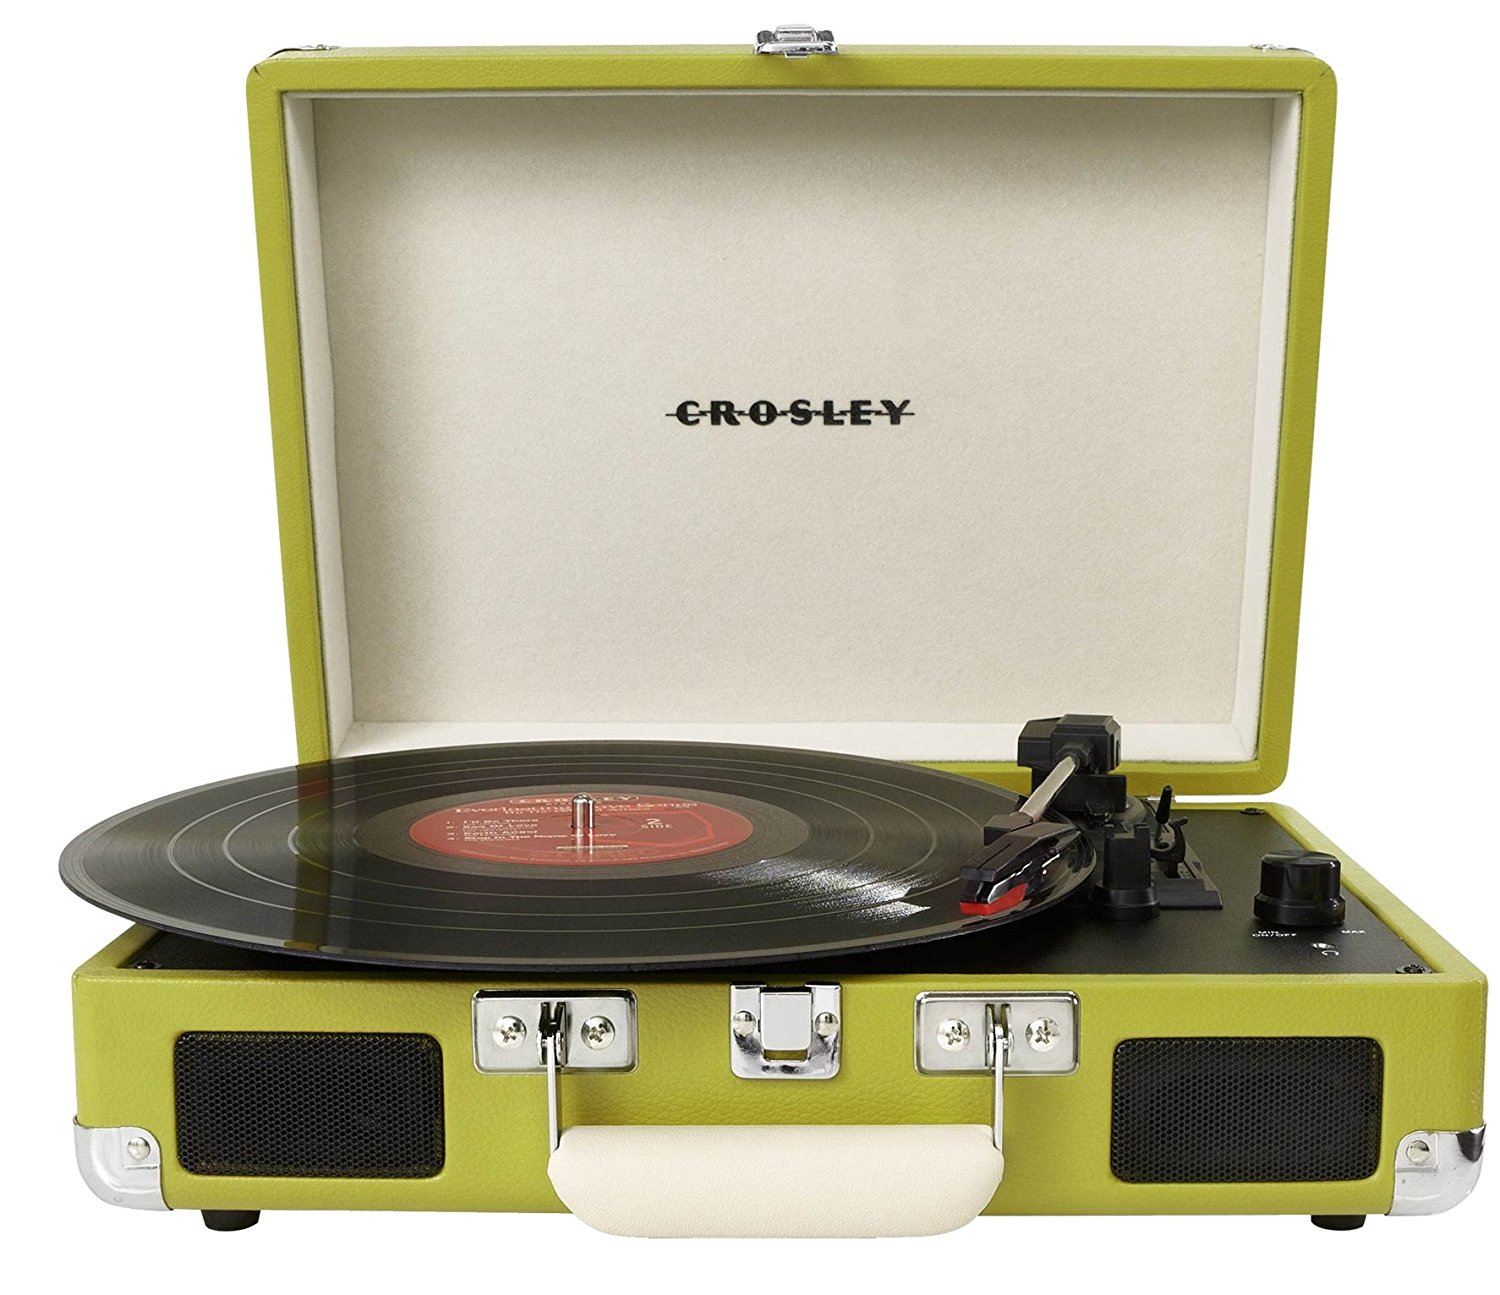 Chartreuse Portable Turntable